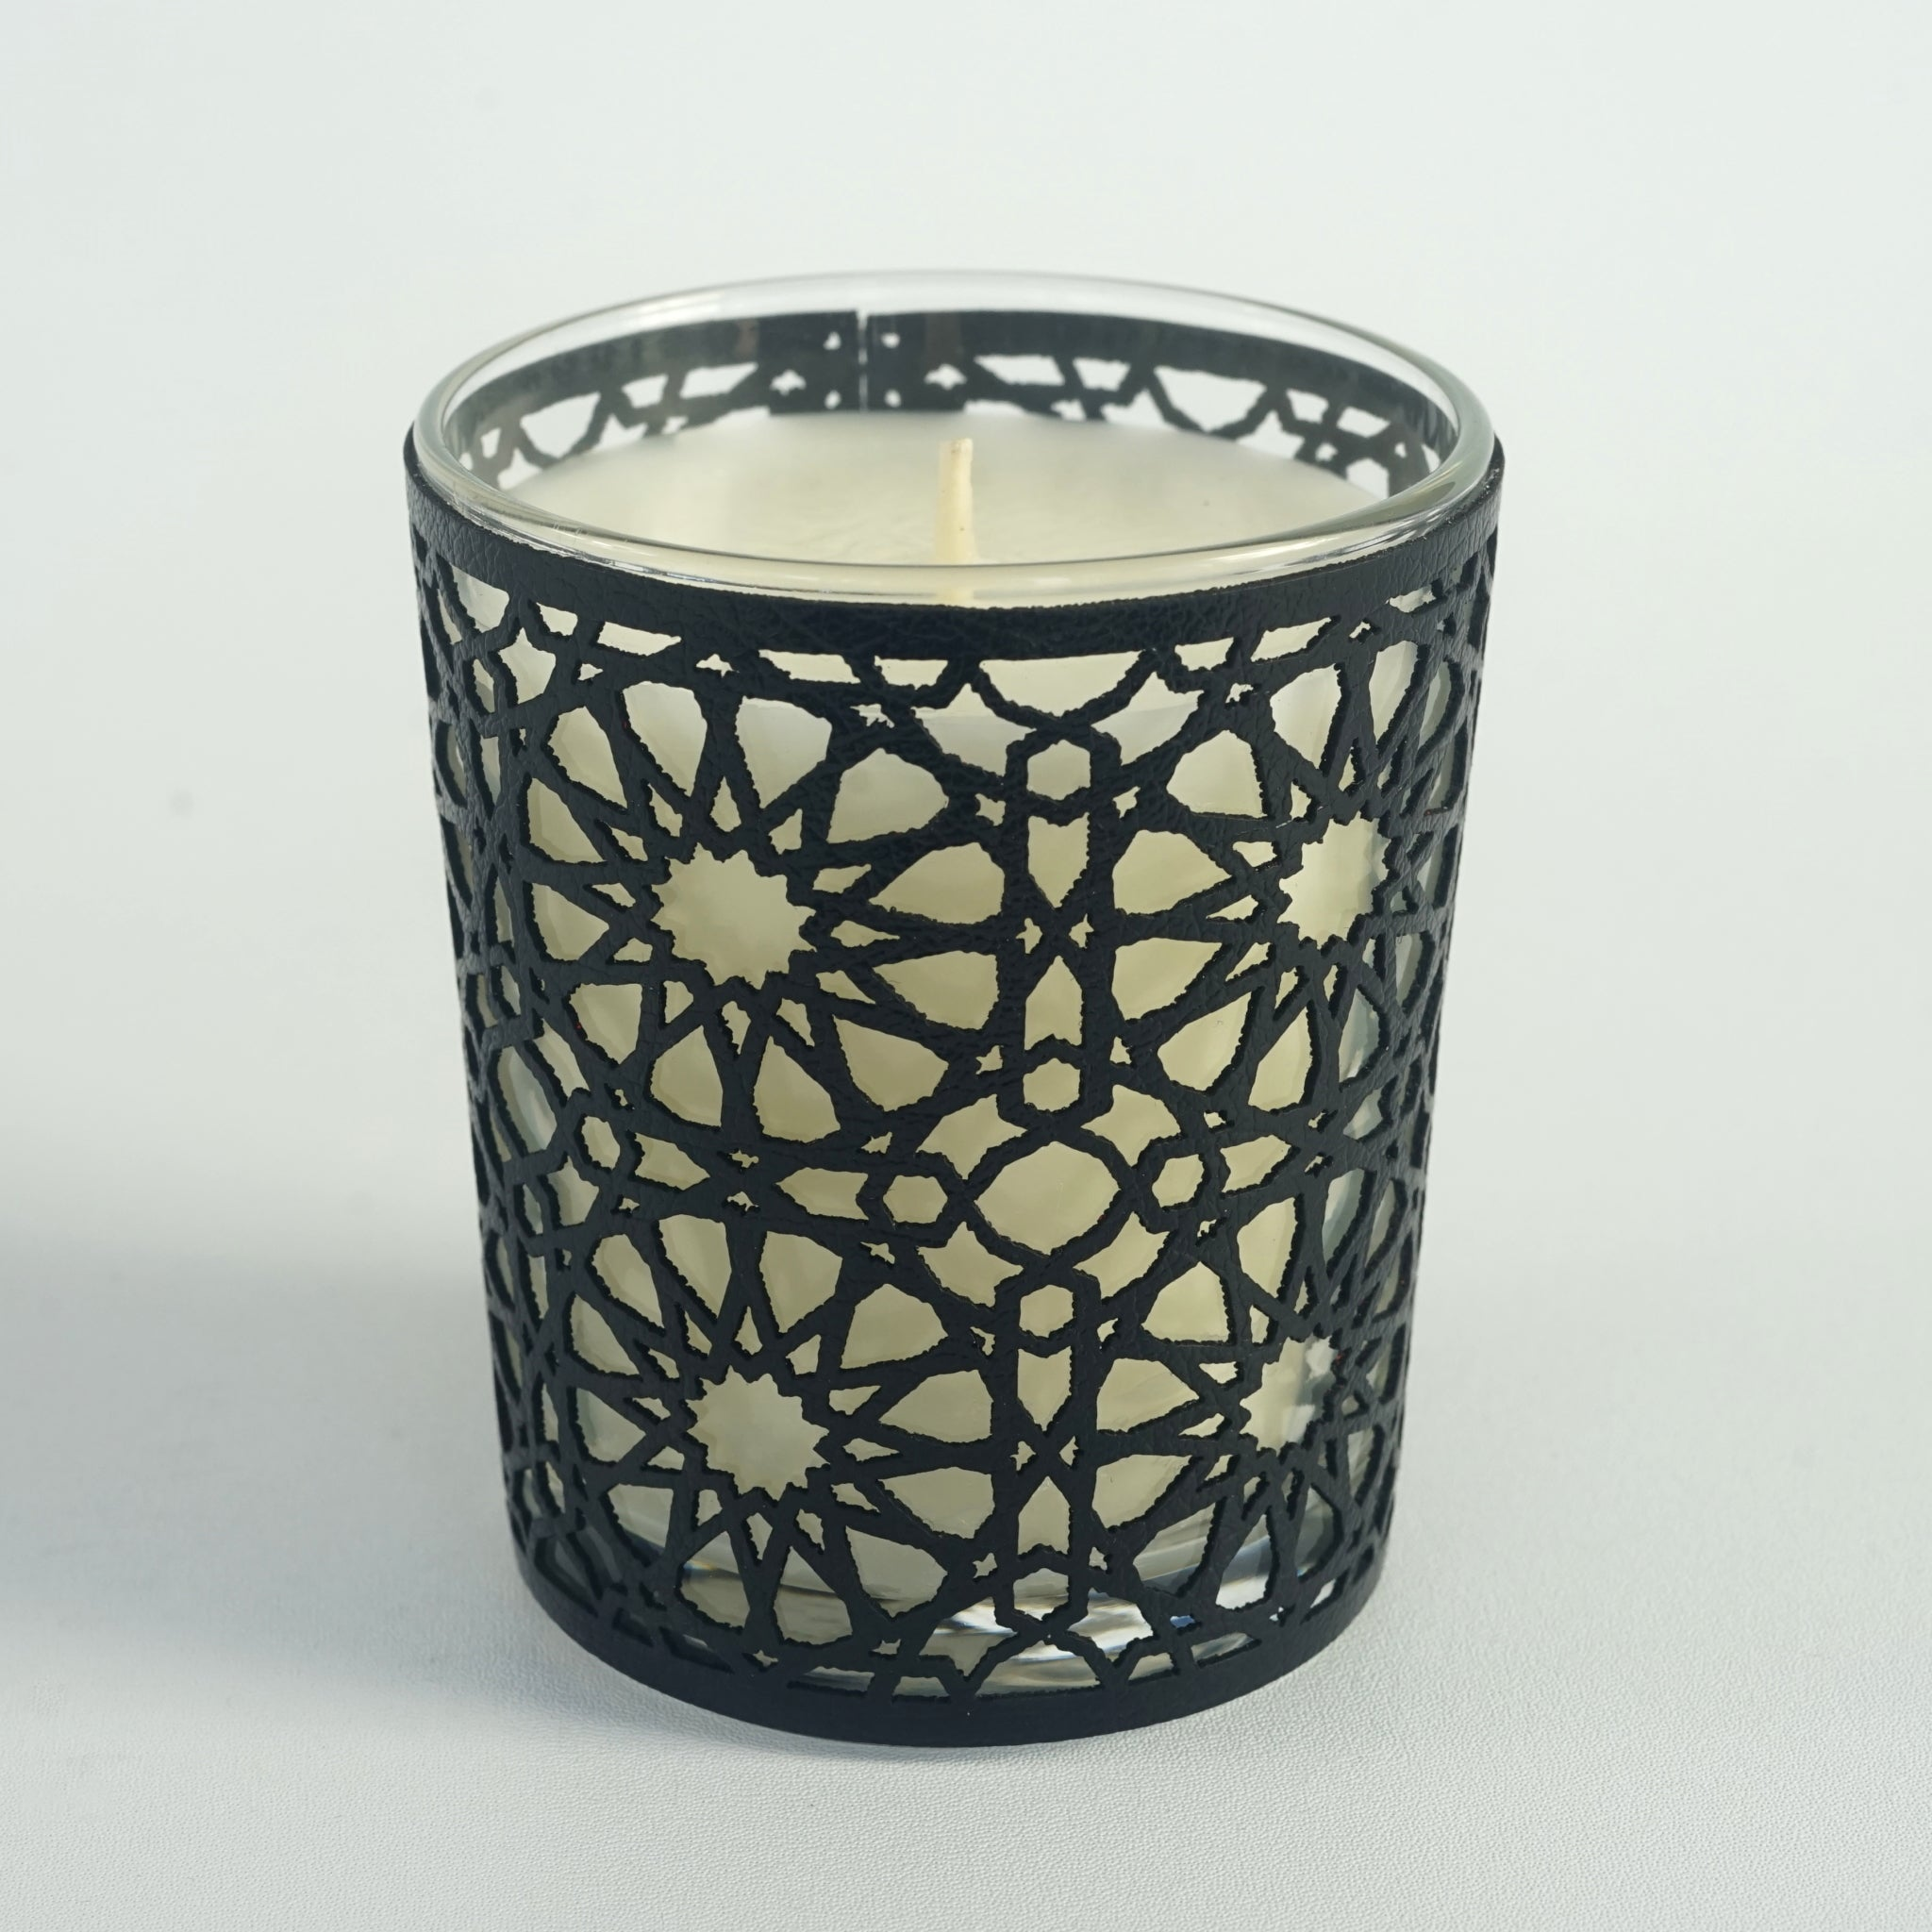 Scented candle 'Orientale'